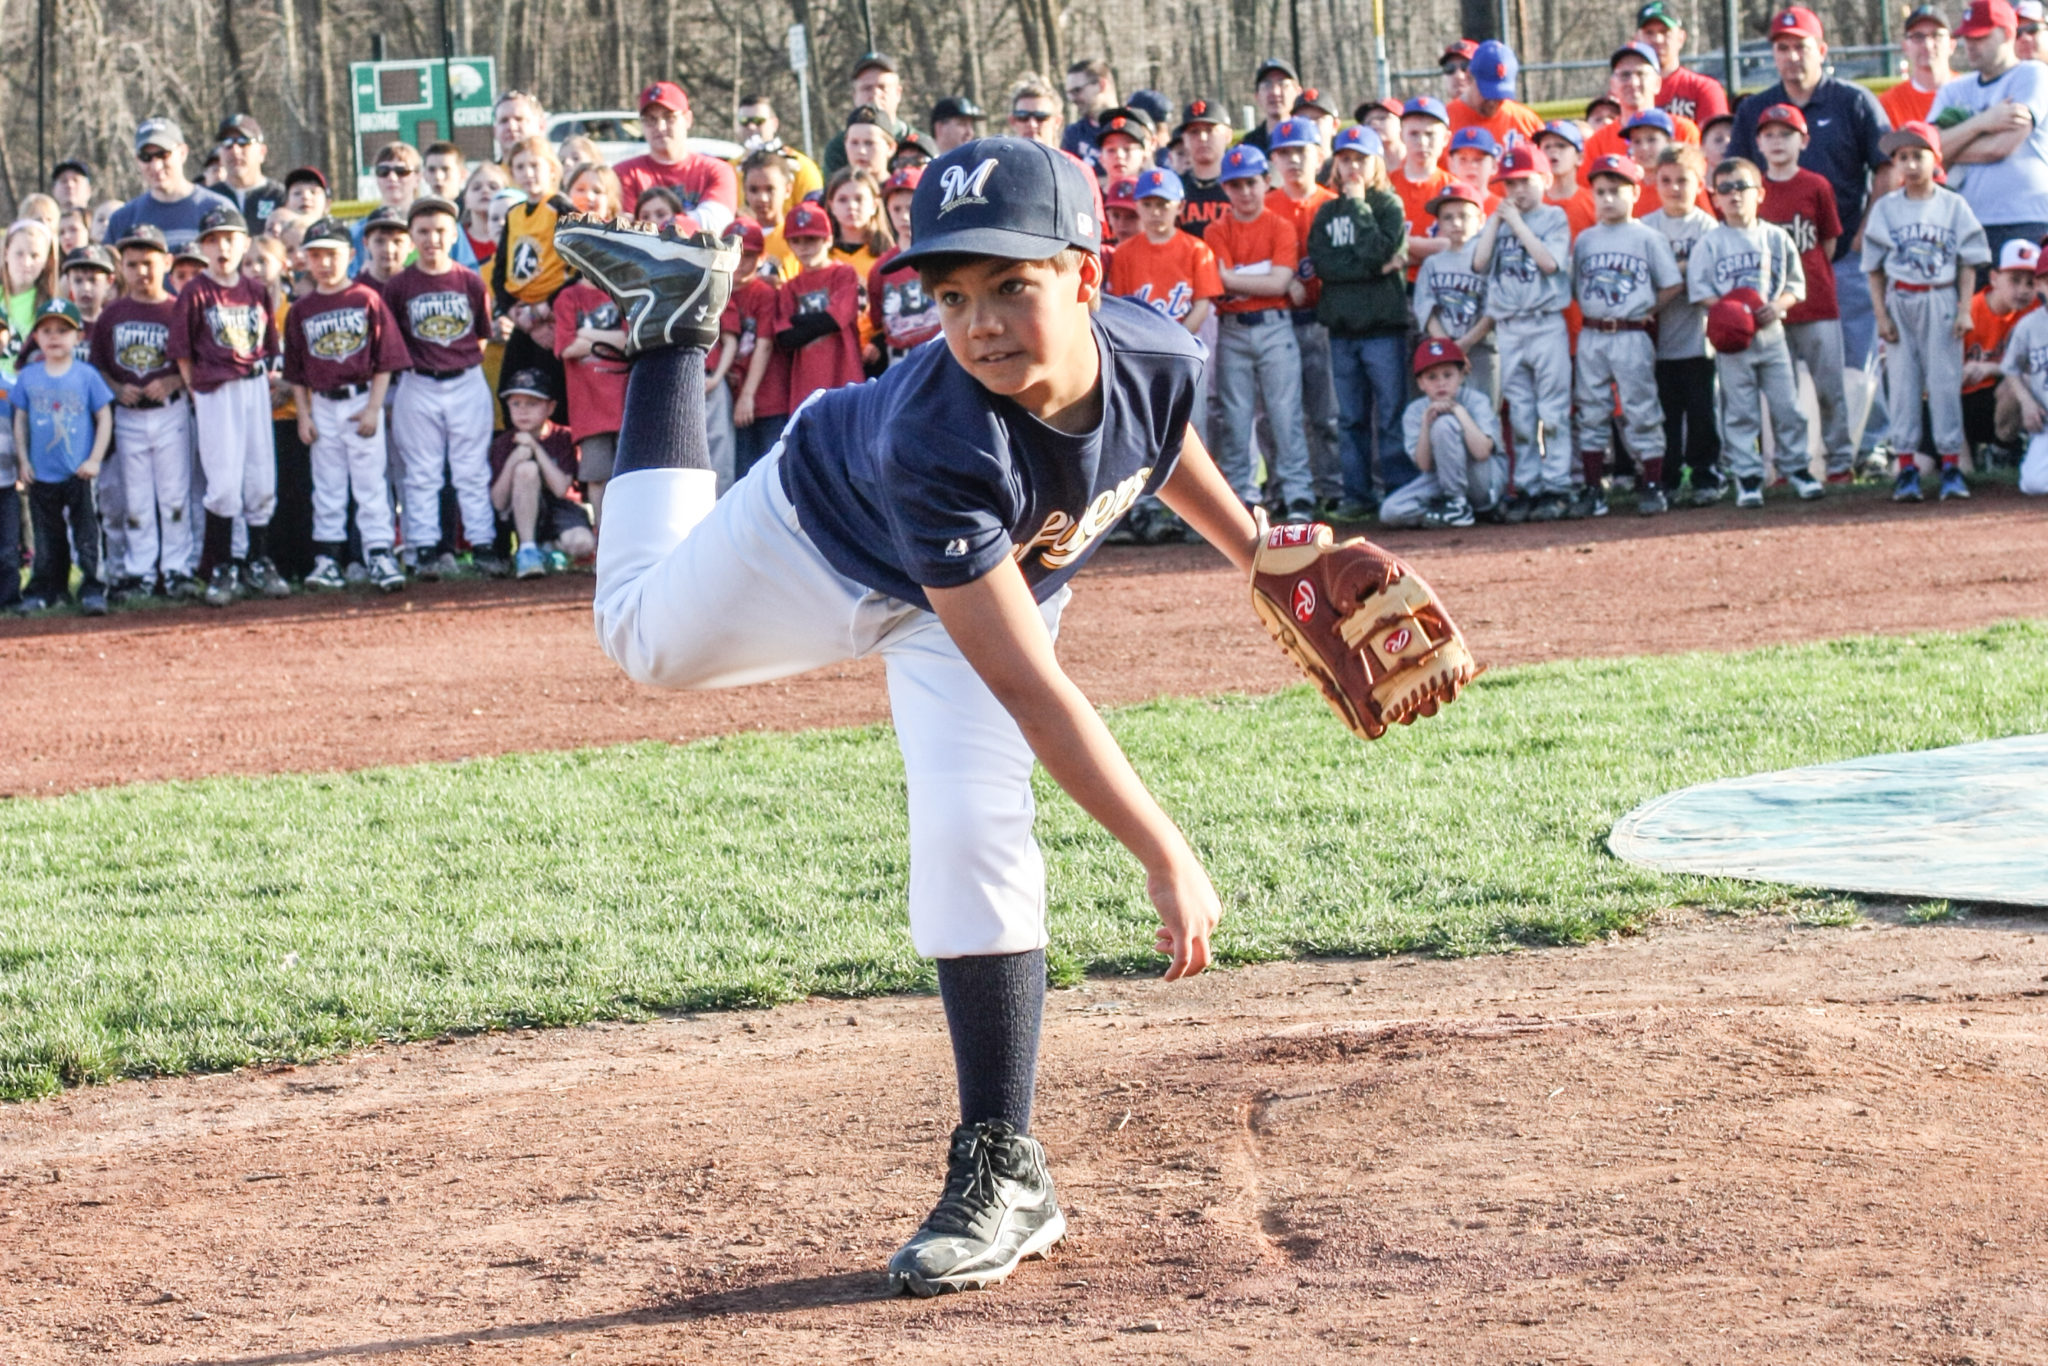 Brewers Reach Keraga Cup Championship Game Red Sox Fall In